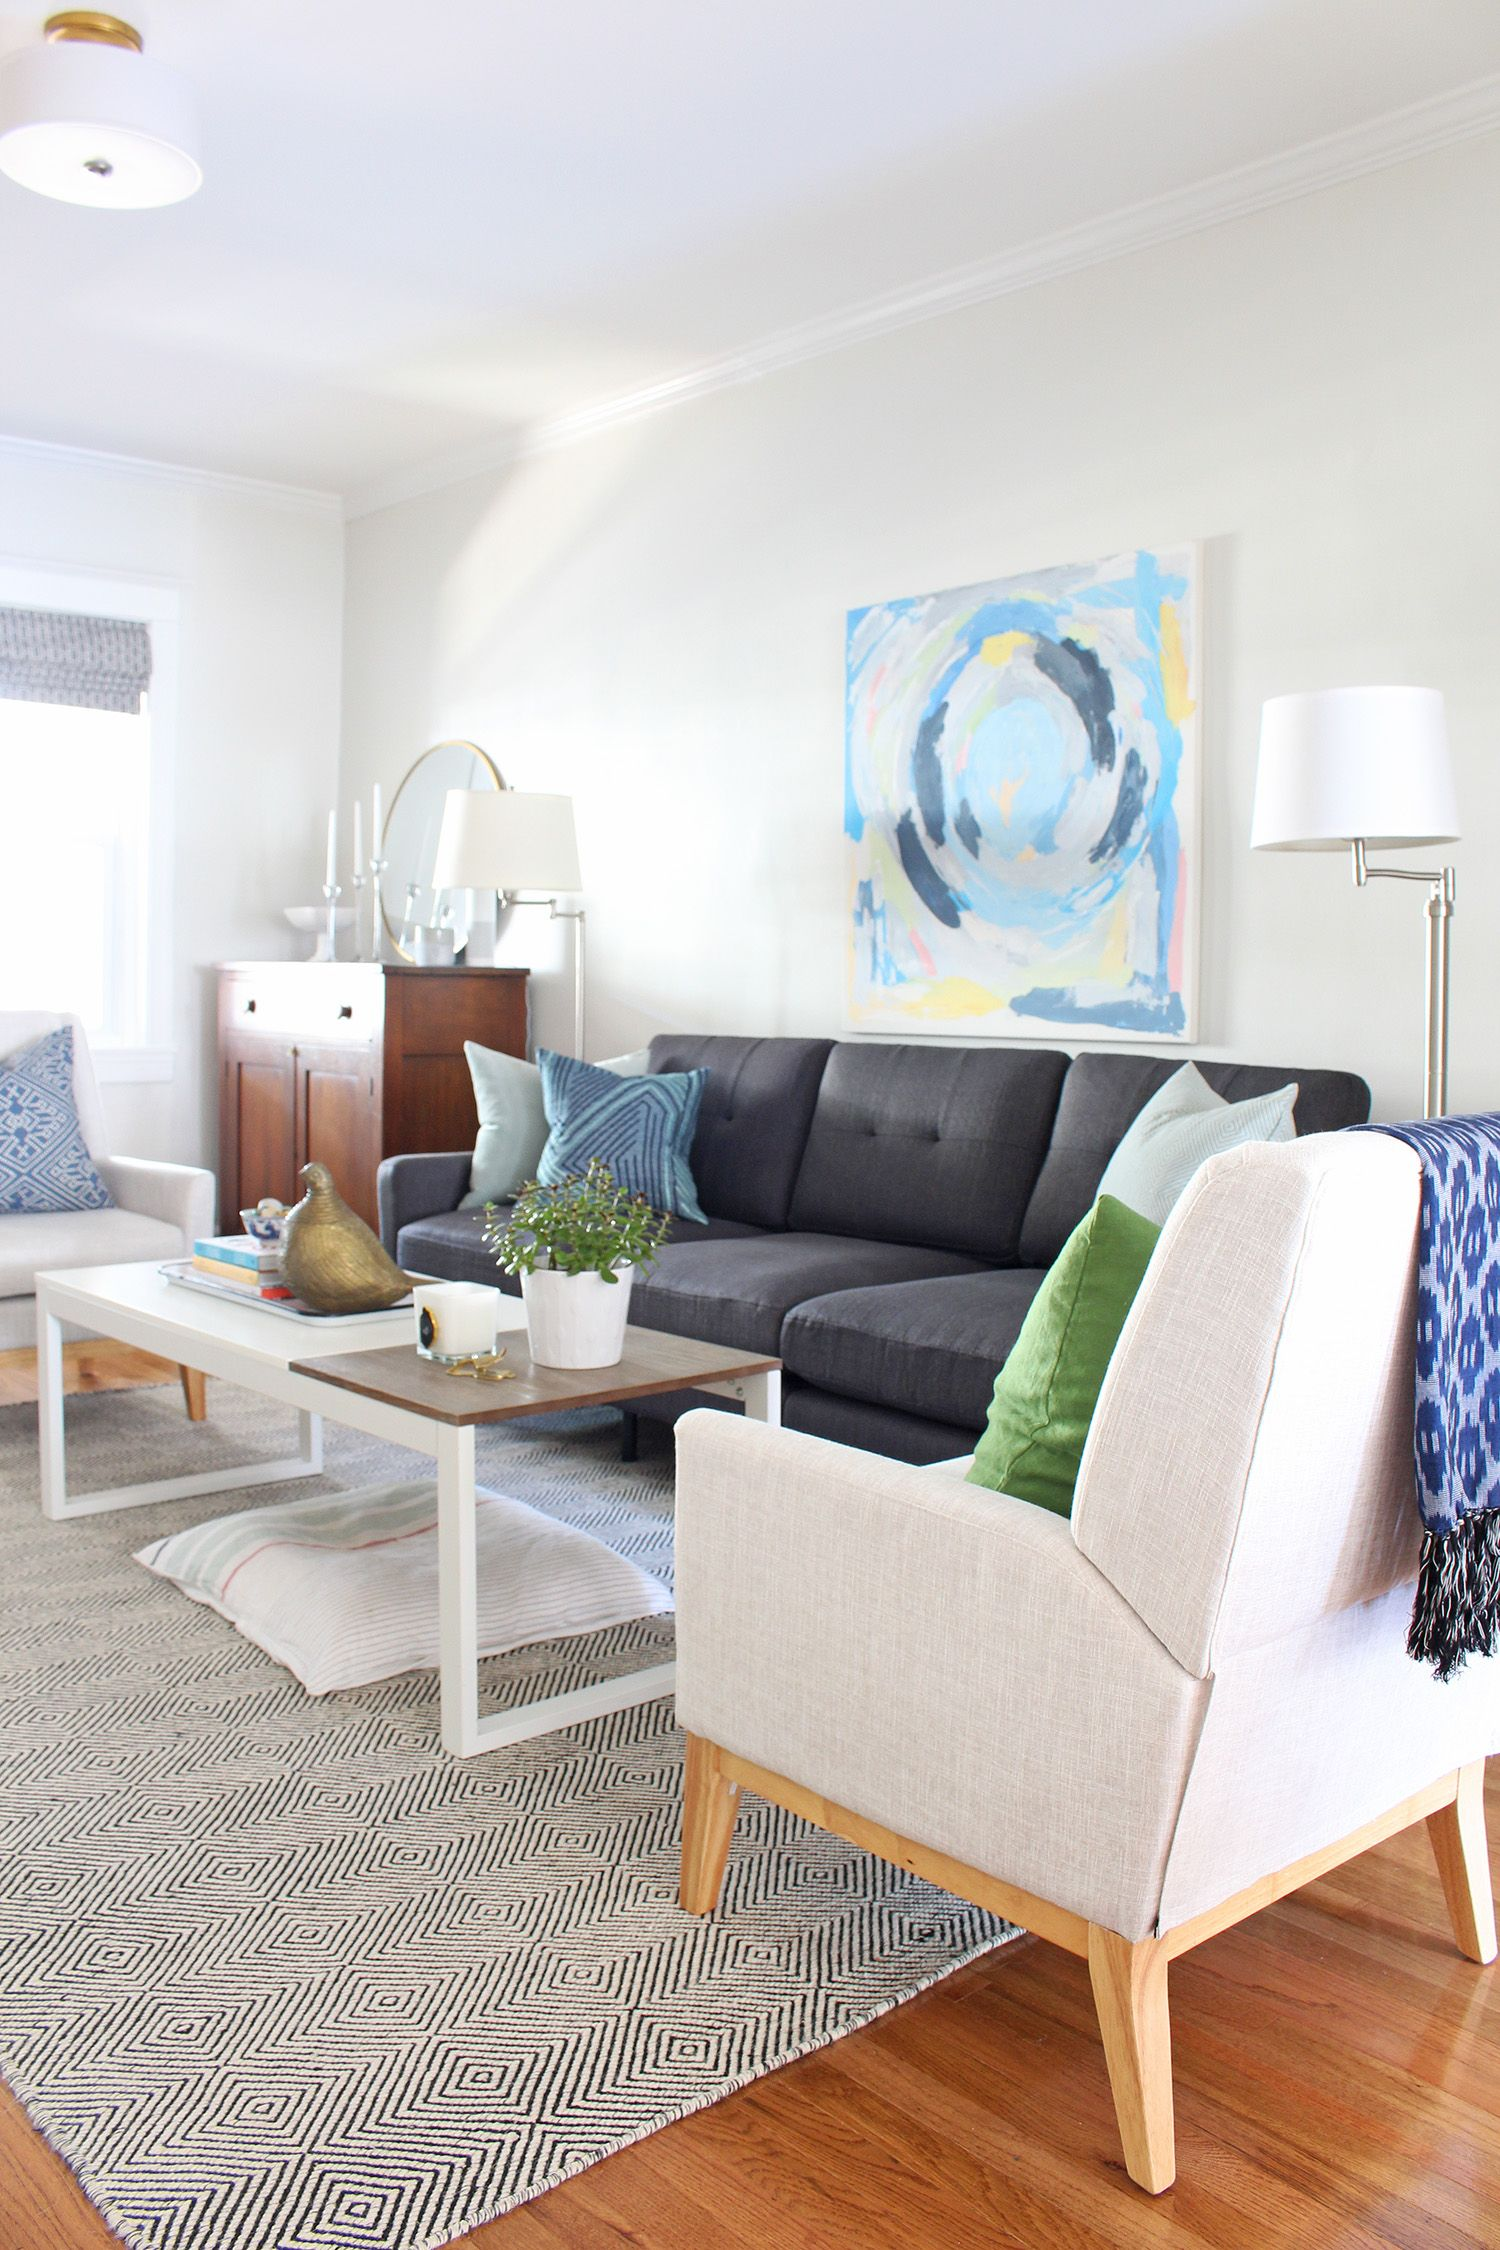 Five Small Space Design Ideas That Balance Style Function Small Space Design New Living Room Living Room Sofa